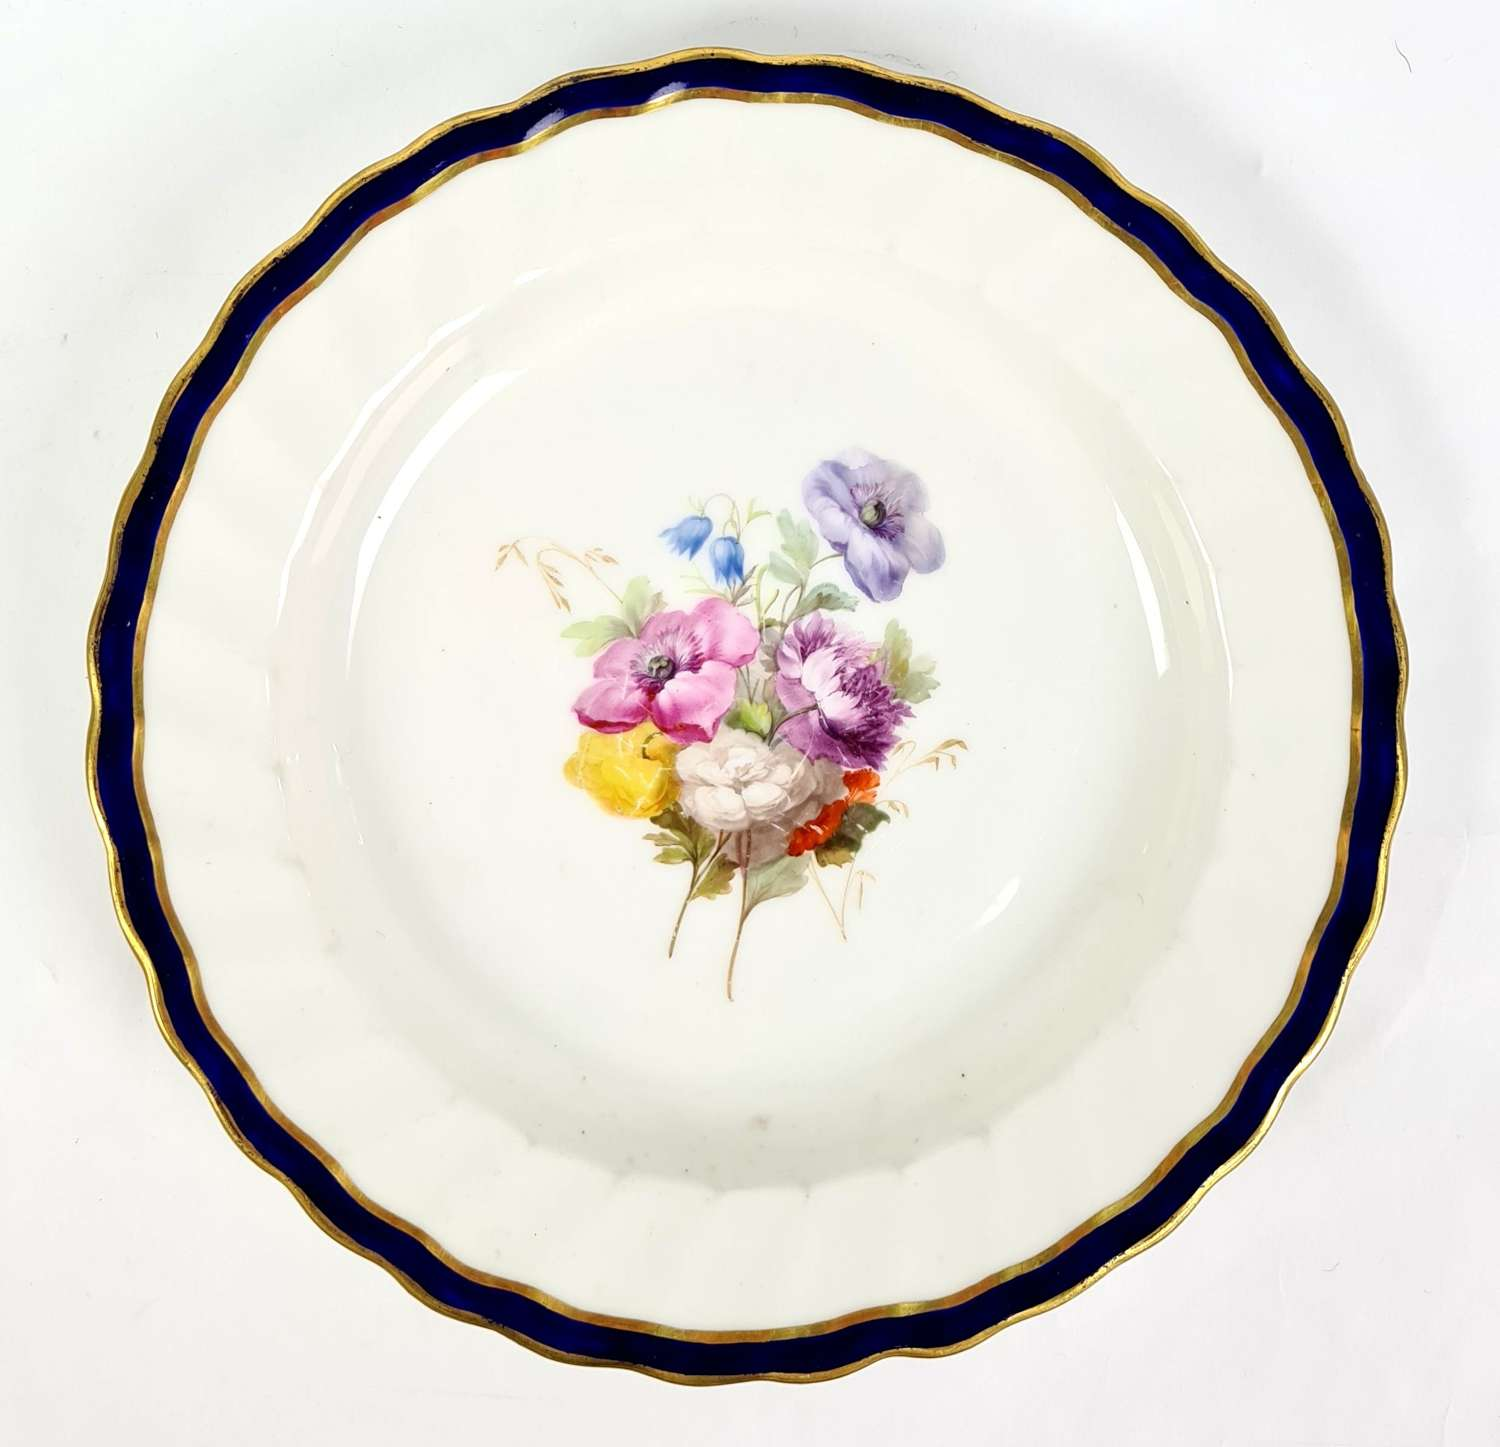 Derby Plate Decorated with Flowers